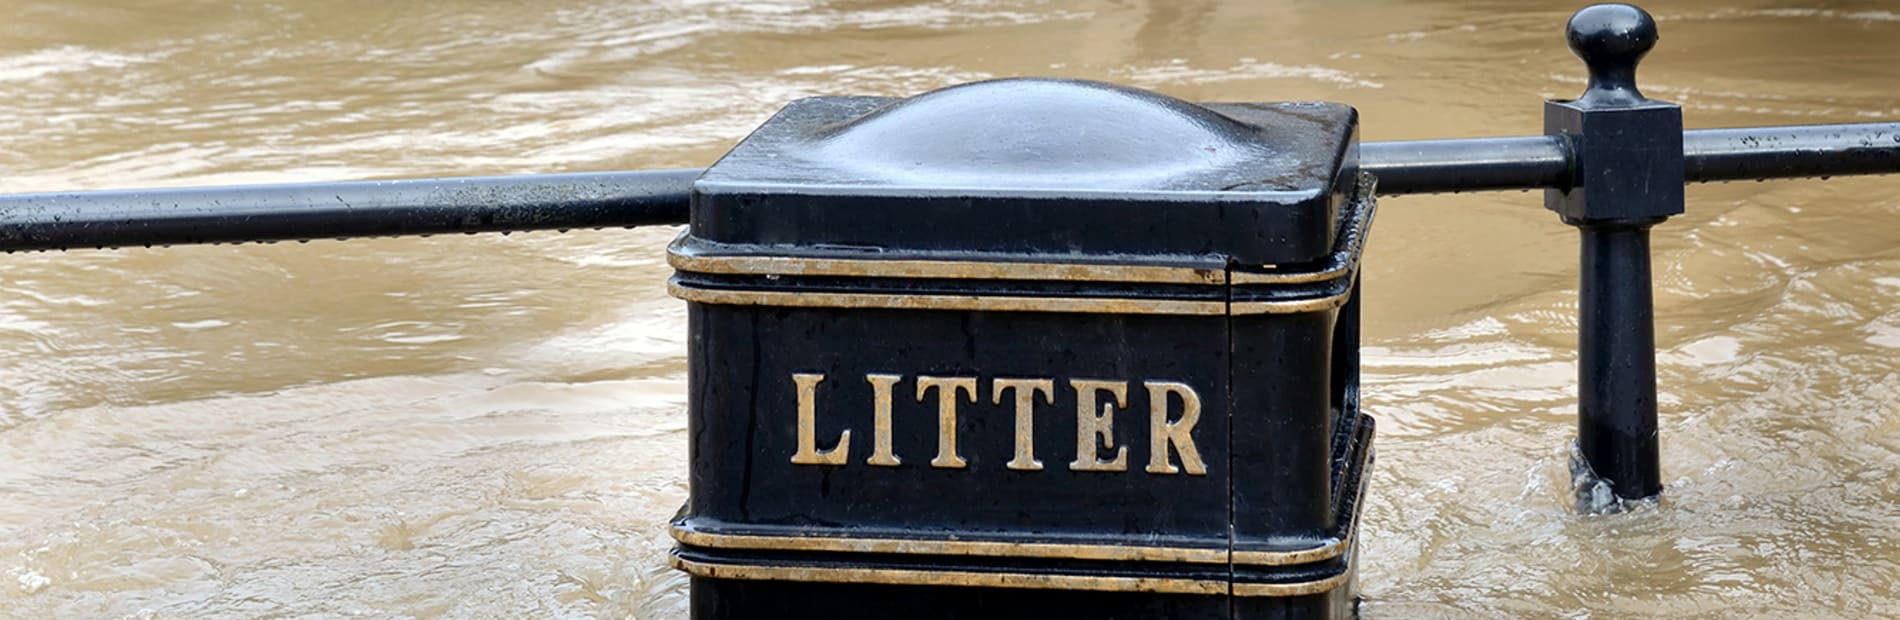 A litter bin surrounded with flood waters, the water rising above the litter sign.